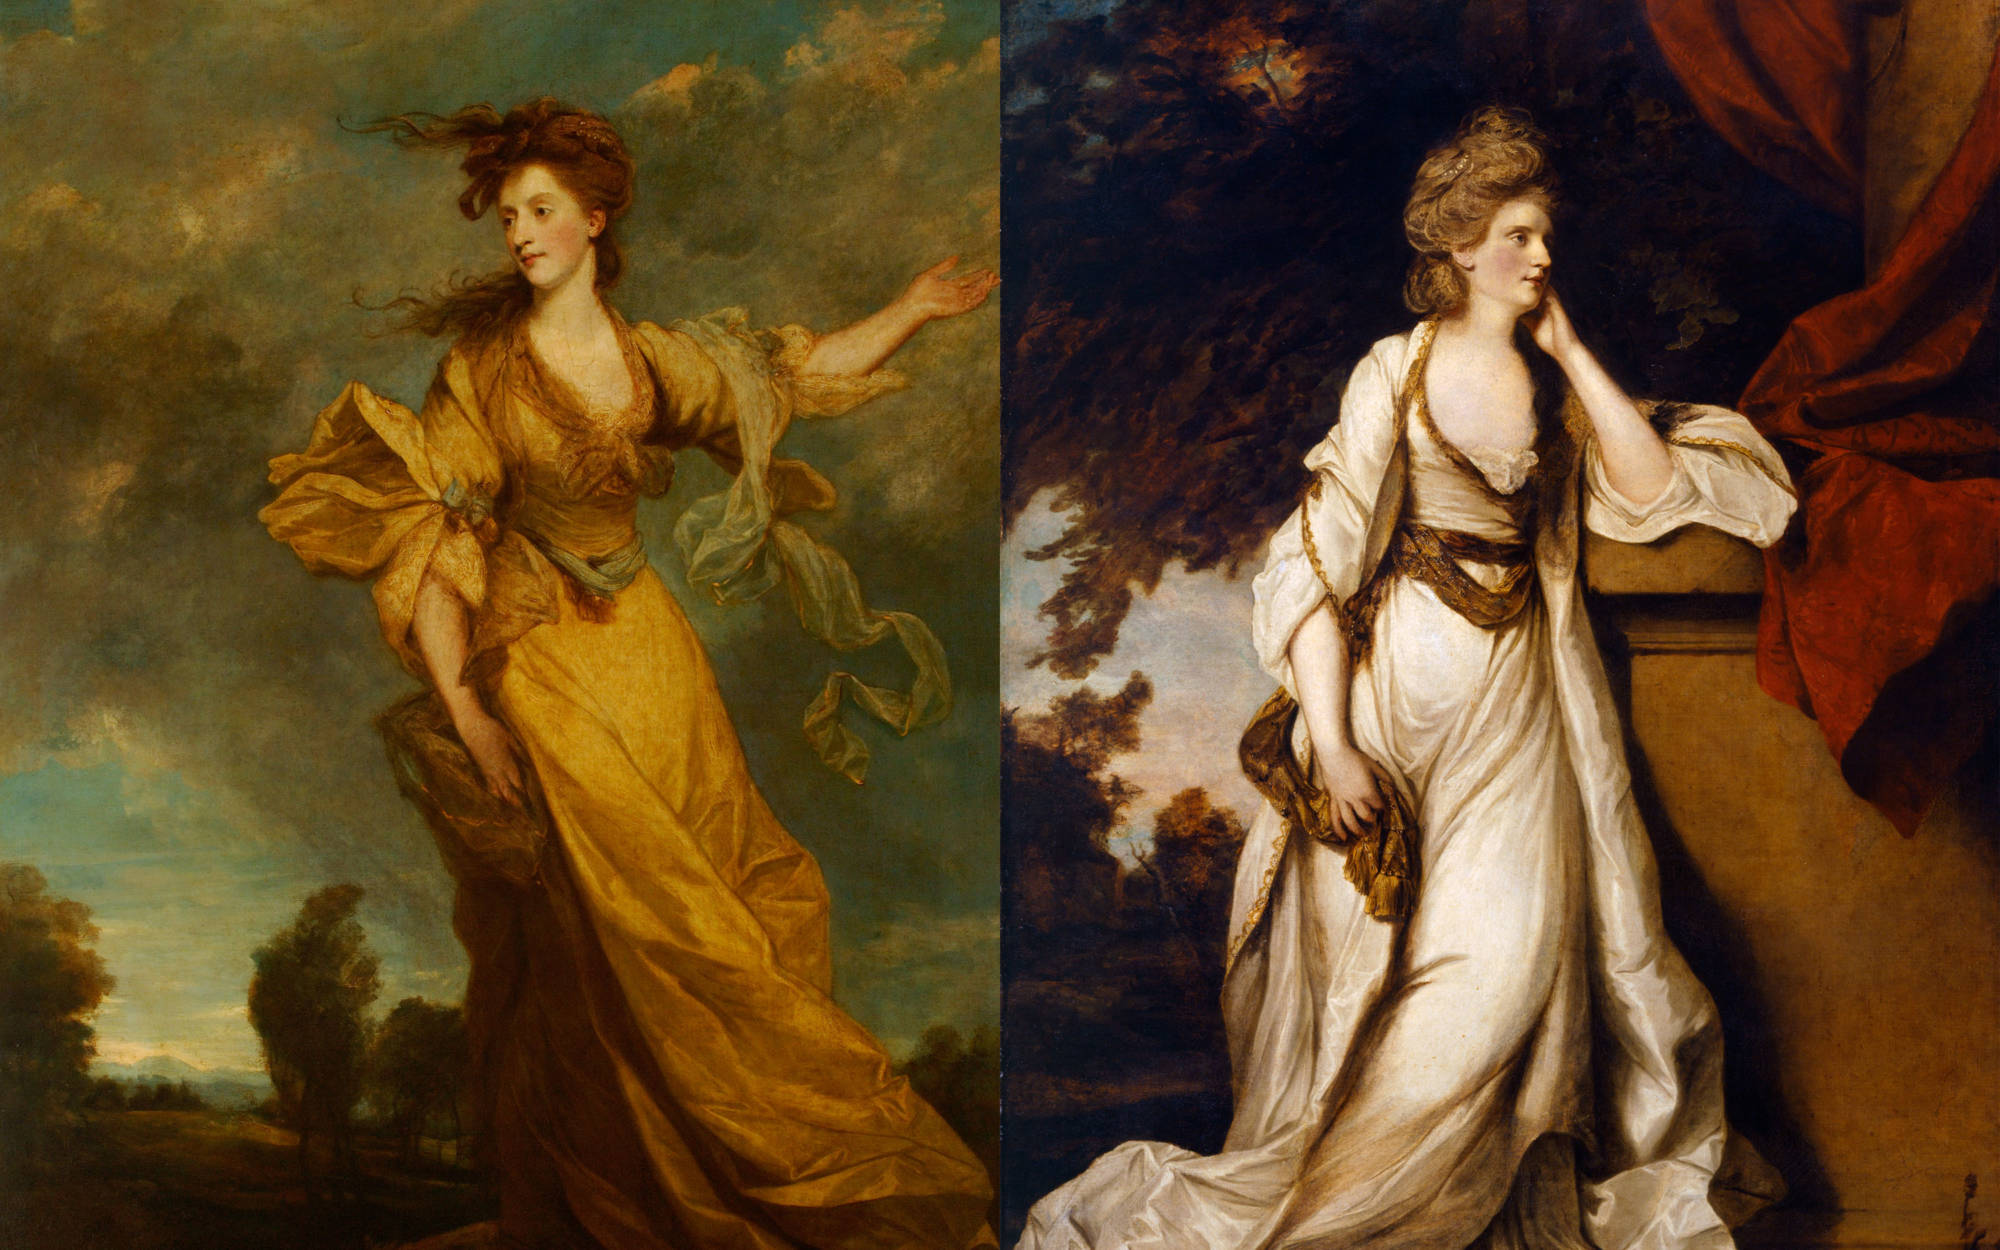 Lady John Halliday (1778-1779) and Lady Louisa Manners (1779): The two paintings formed a contrasting pair